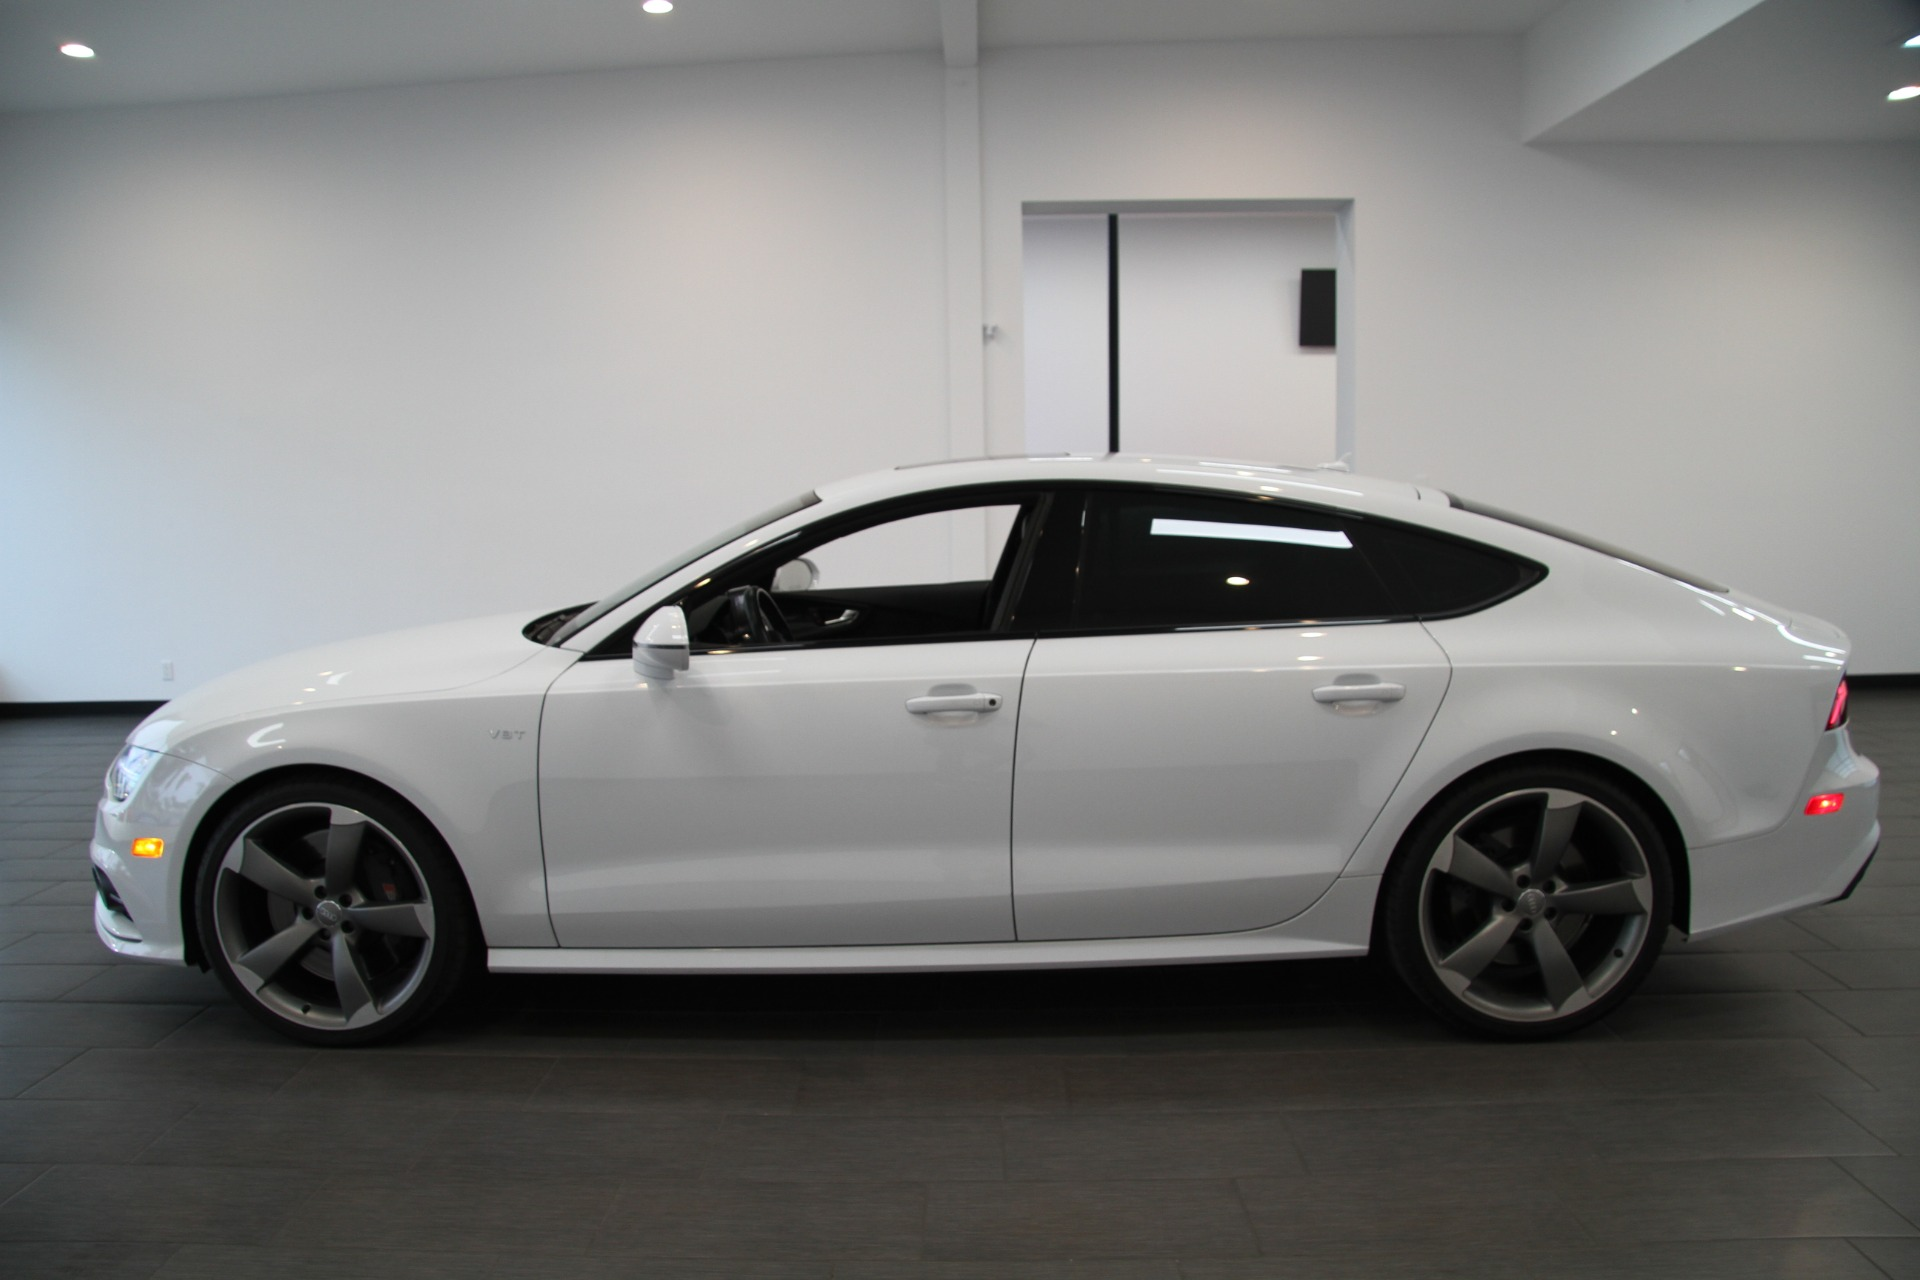 2016 Audi S7 4 0t Quattro Prestige Stock 6101 For